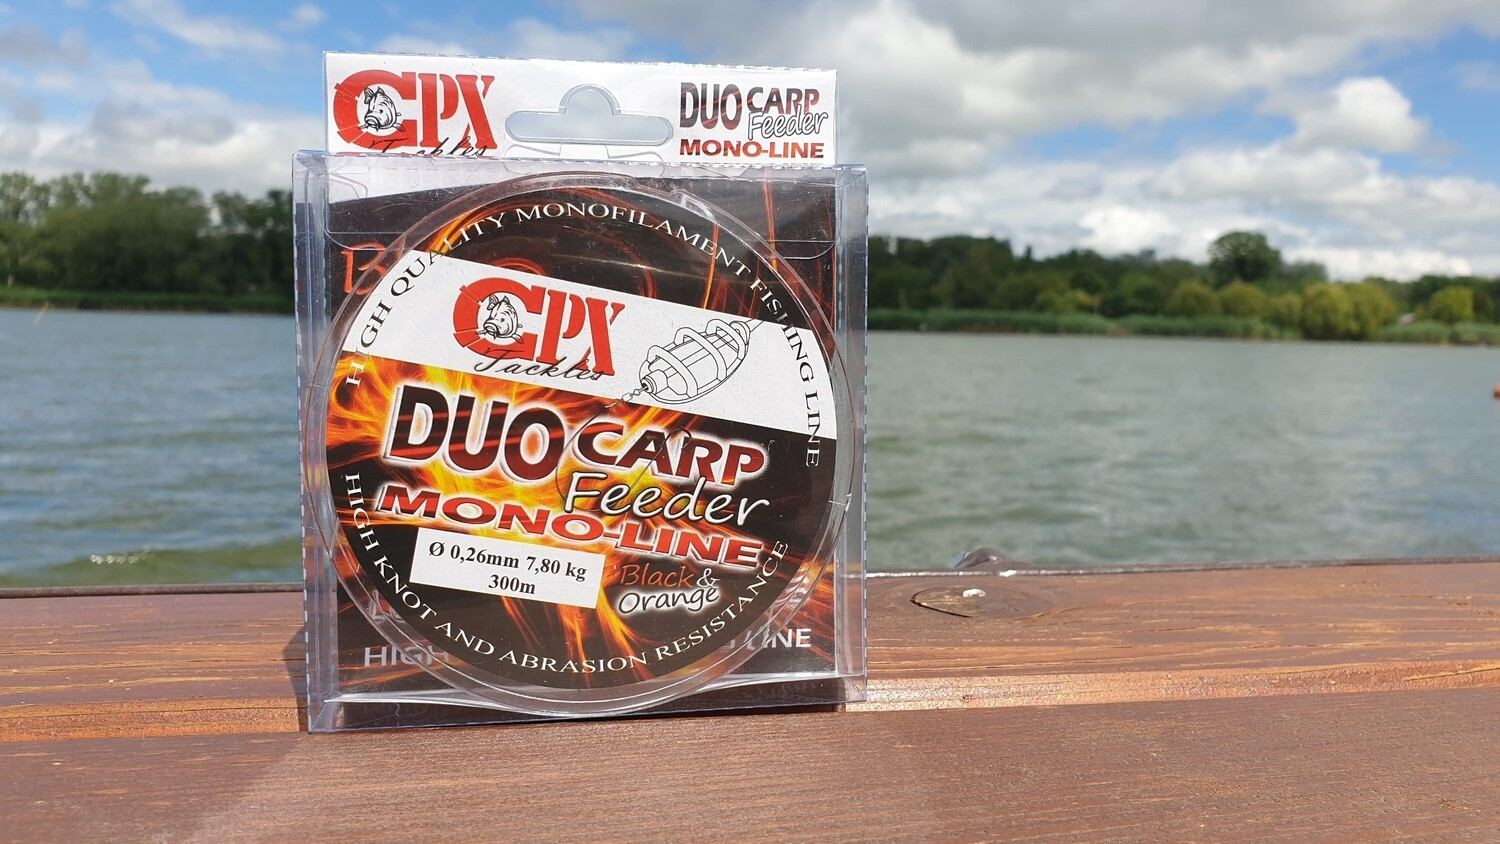 CPX - DUO CARP FEEDER MONO-LINE zsinór - BLACK & ORANGE - 300m